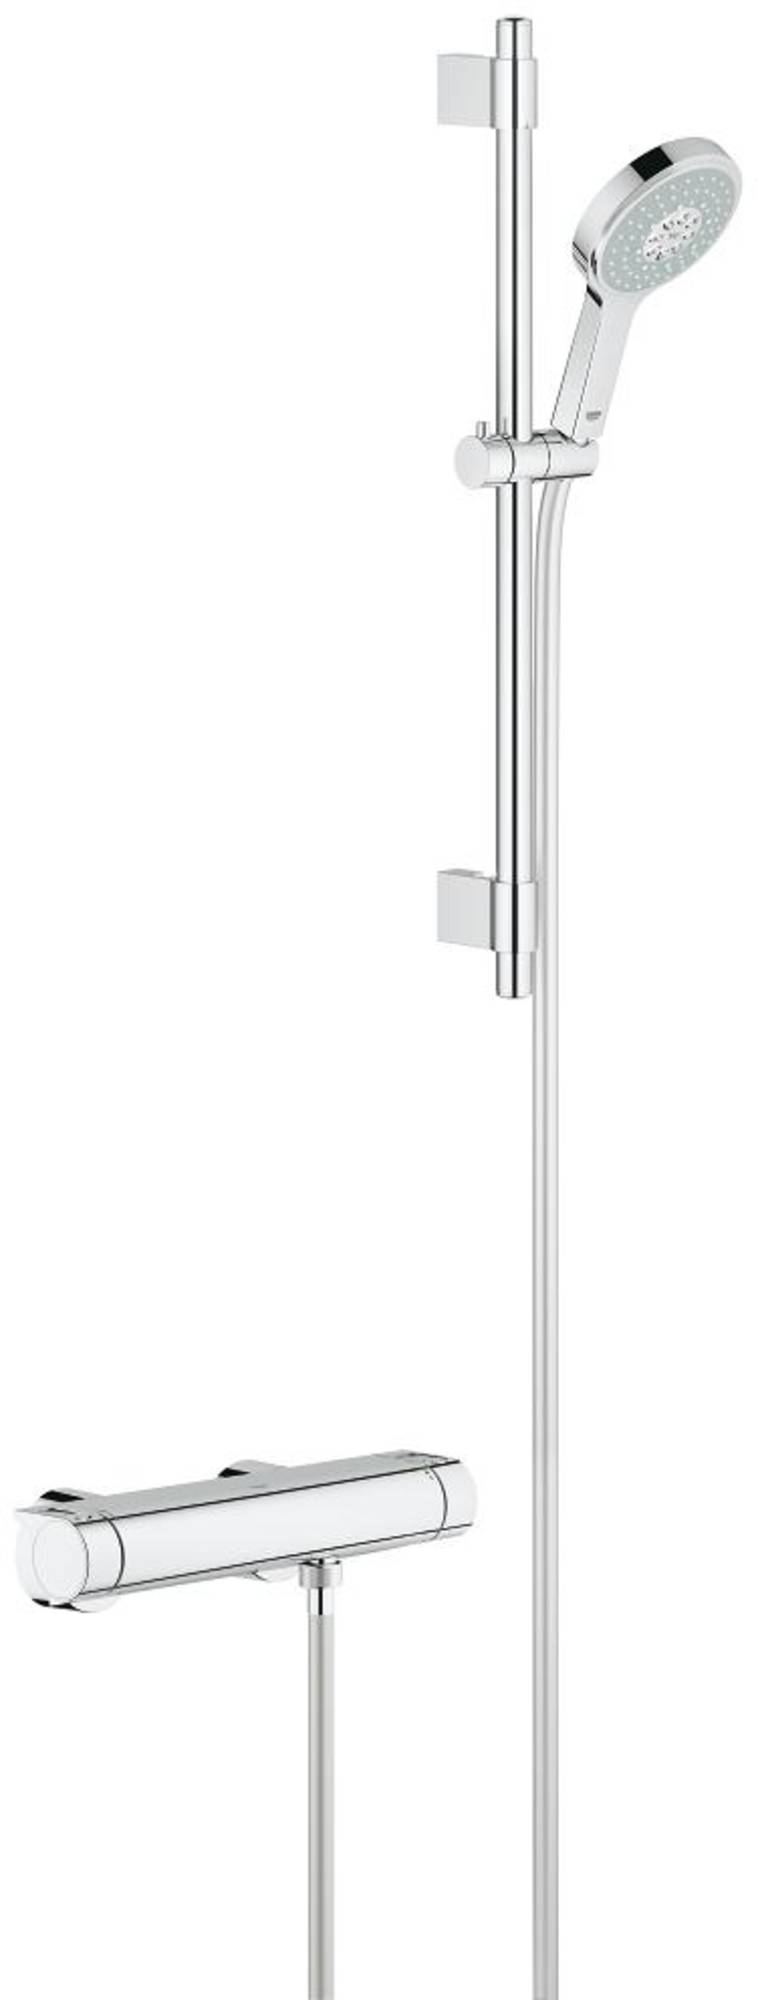 Grohe New Grohtherm 2000 Douchethermostaat met Power&Soul Doucheset Chroom